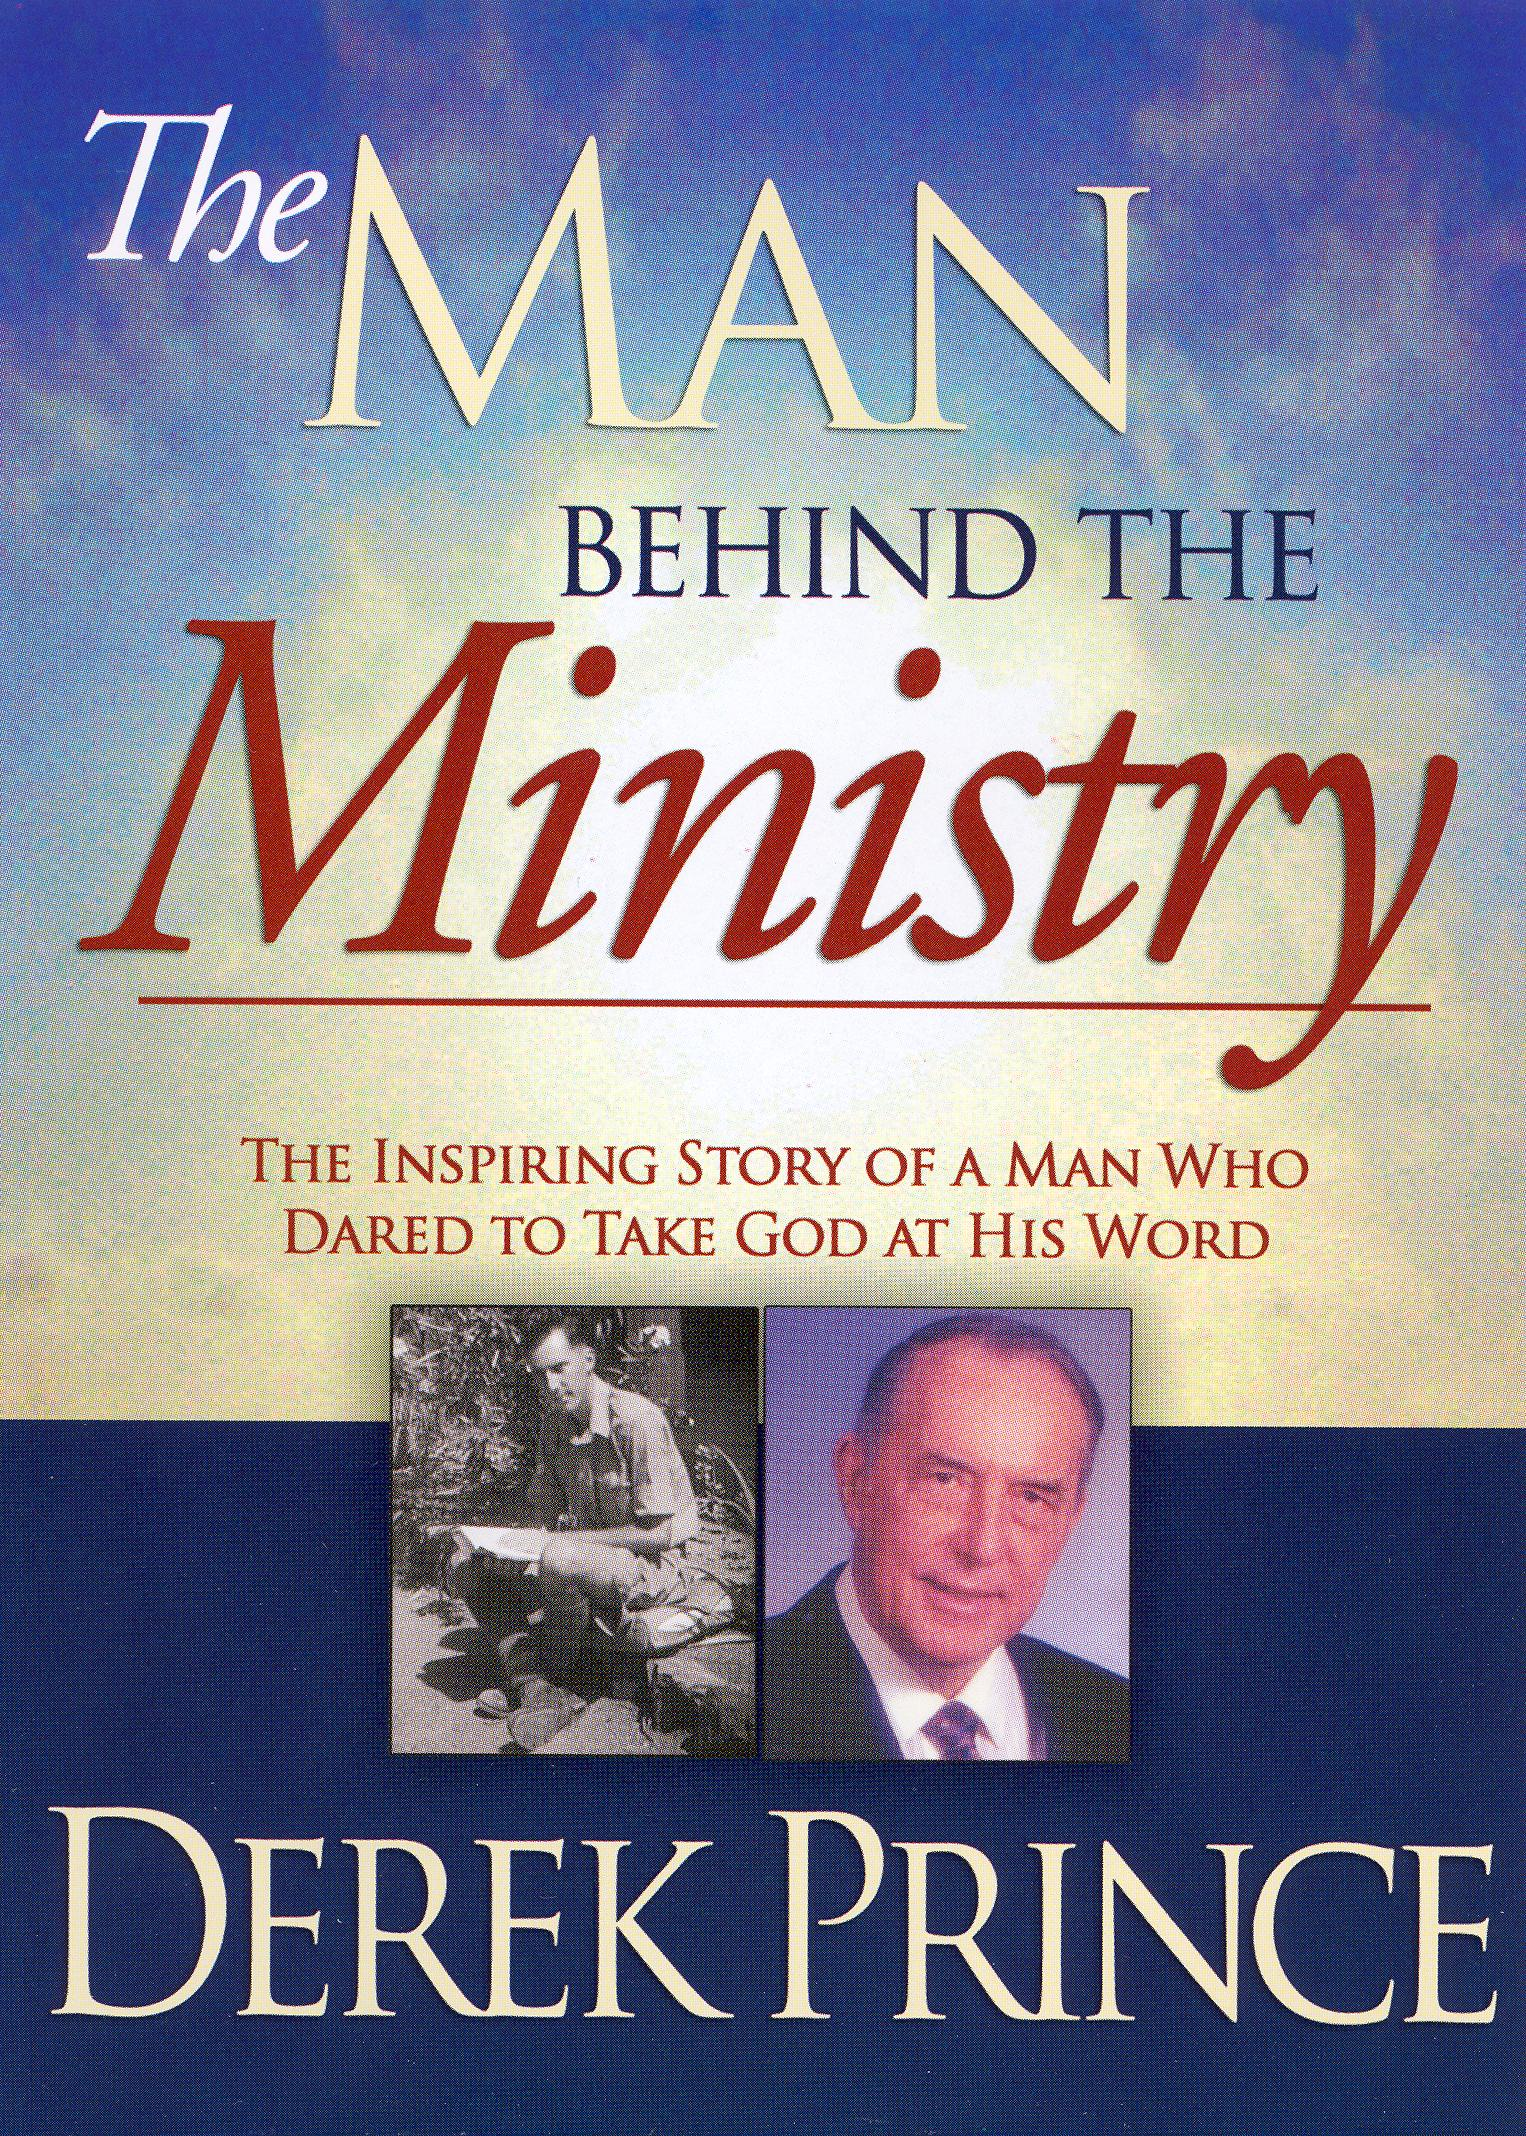 Derek Prince: Man Behind the Ministry